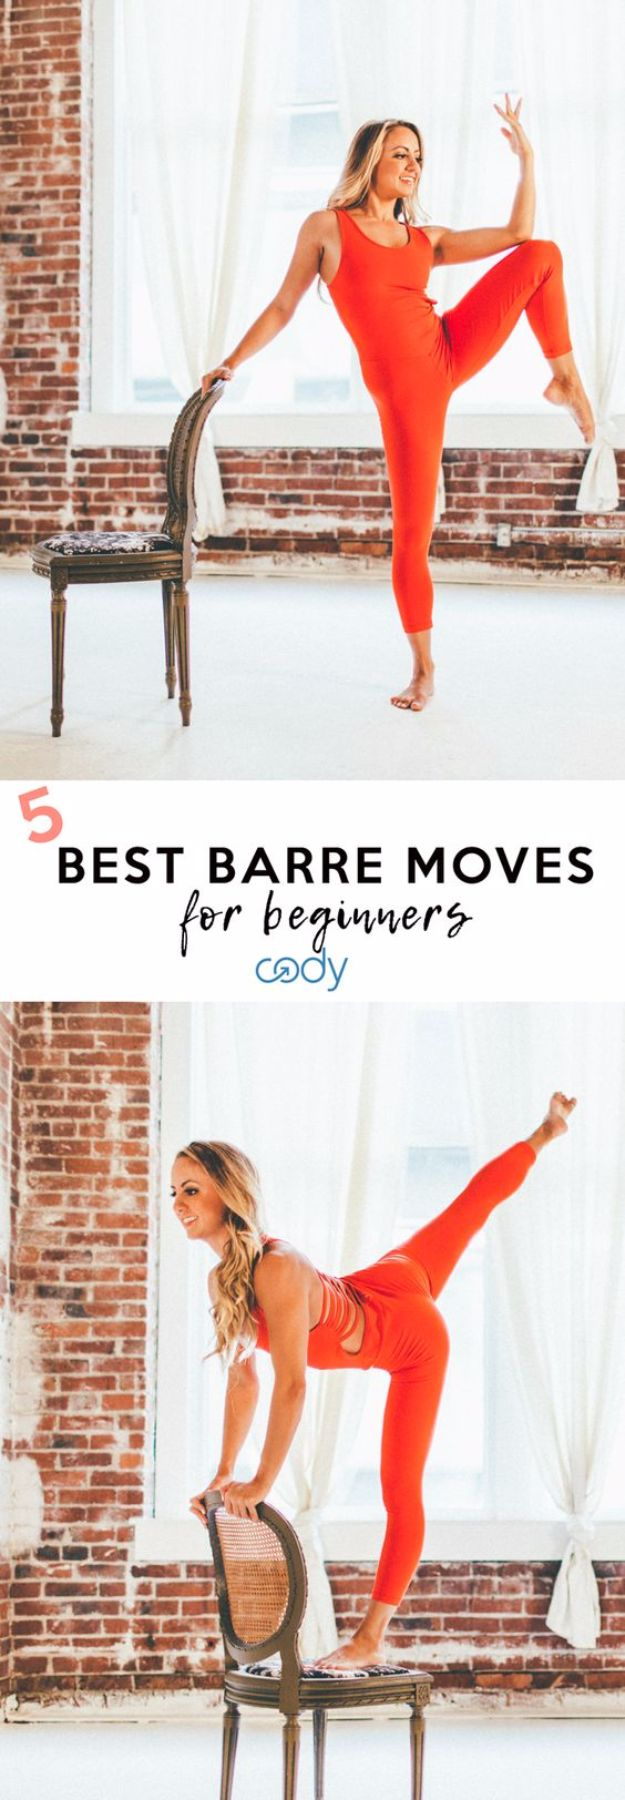 Best Exercises for 2018 - Ballet Barre Moves for Beginnners - Easy At Home Exercises - Quick Exercise Tutorials to Try at Lunch Break - Ways To Get In Shape - Butt, Abs, Arms, Legs, Thighs, Tummy http://diyjoy.com/best-at-home-exercises-2018